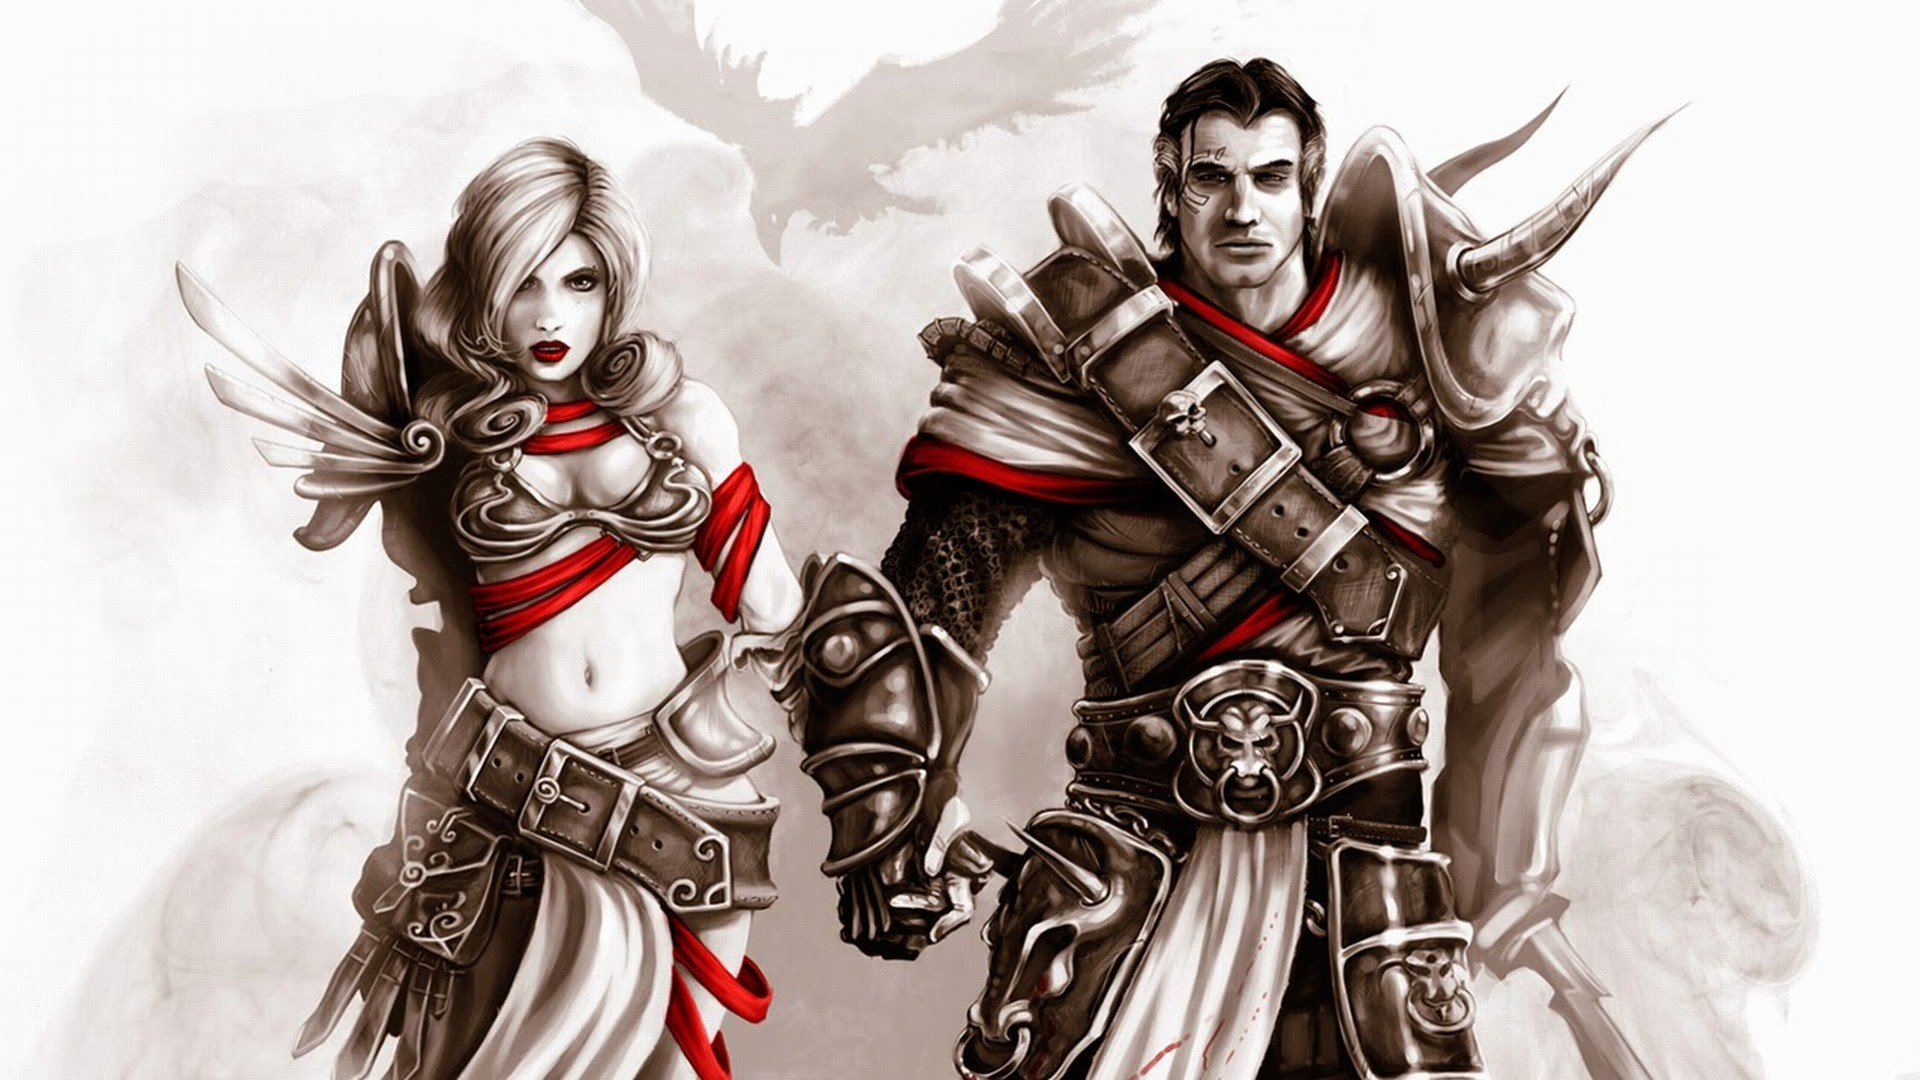 Divinity Original Sin Wallpapers 1920x1080 Full Hd 1080p Desktop Backgrounds